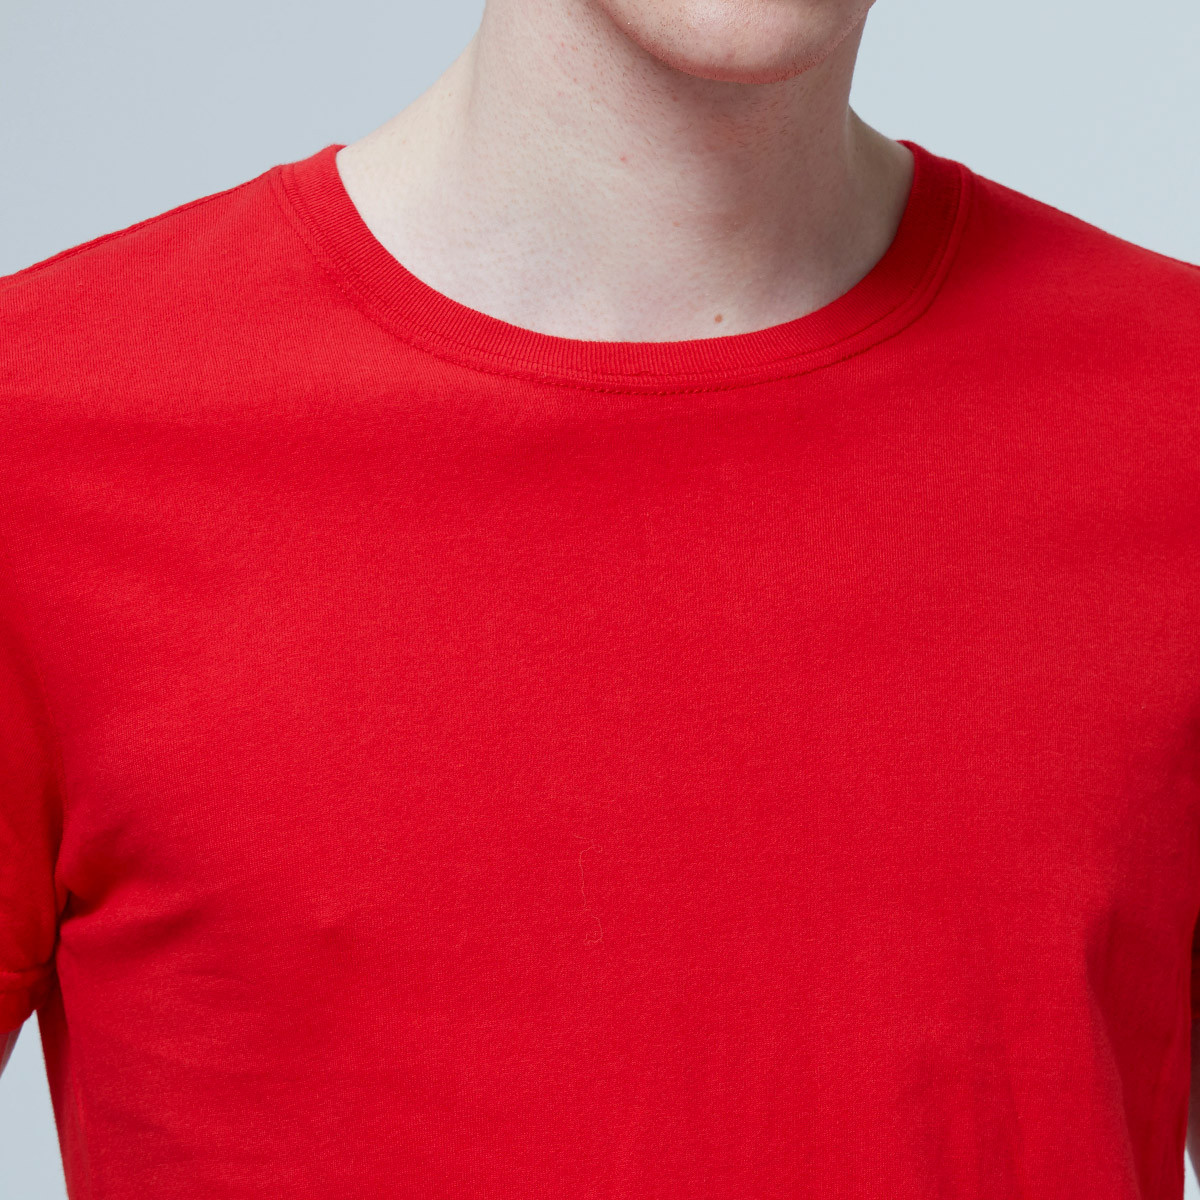 Breathable Sweat Absorbent Men's T Shirt With Round Neck And Short Sleeves